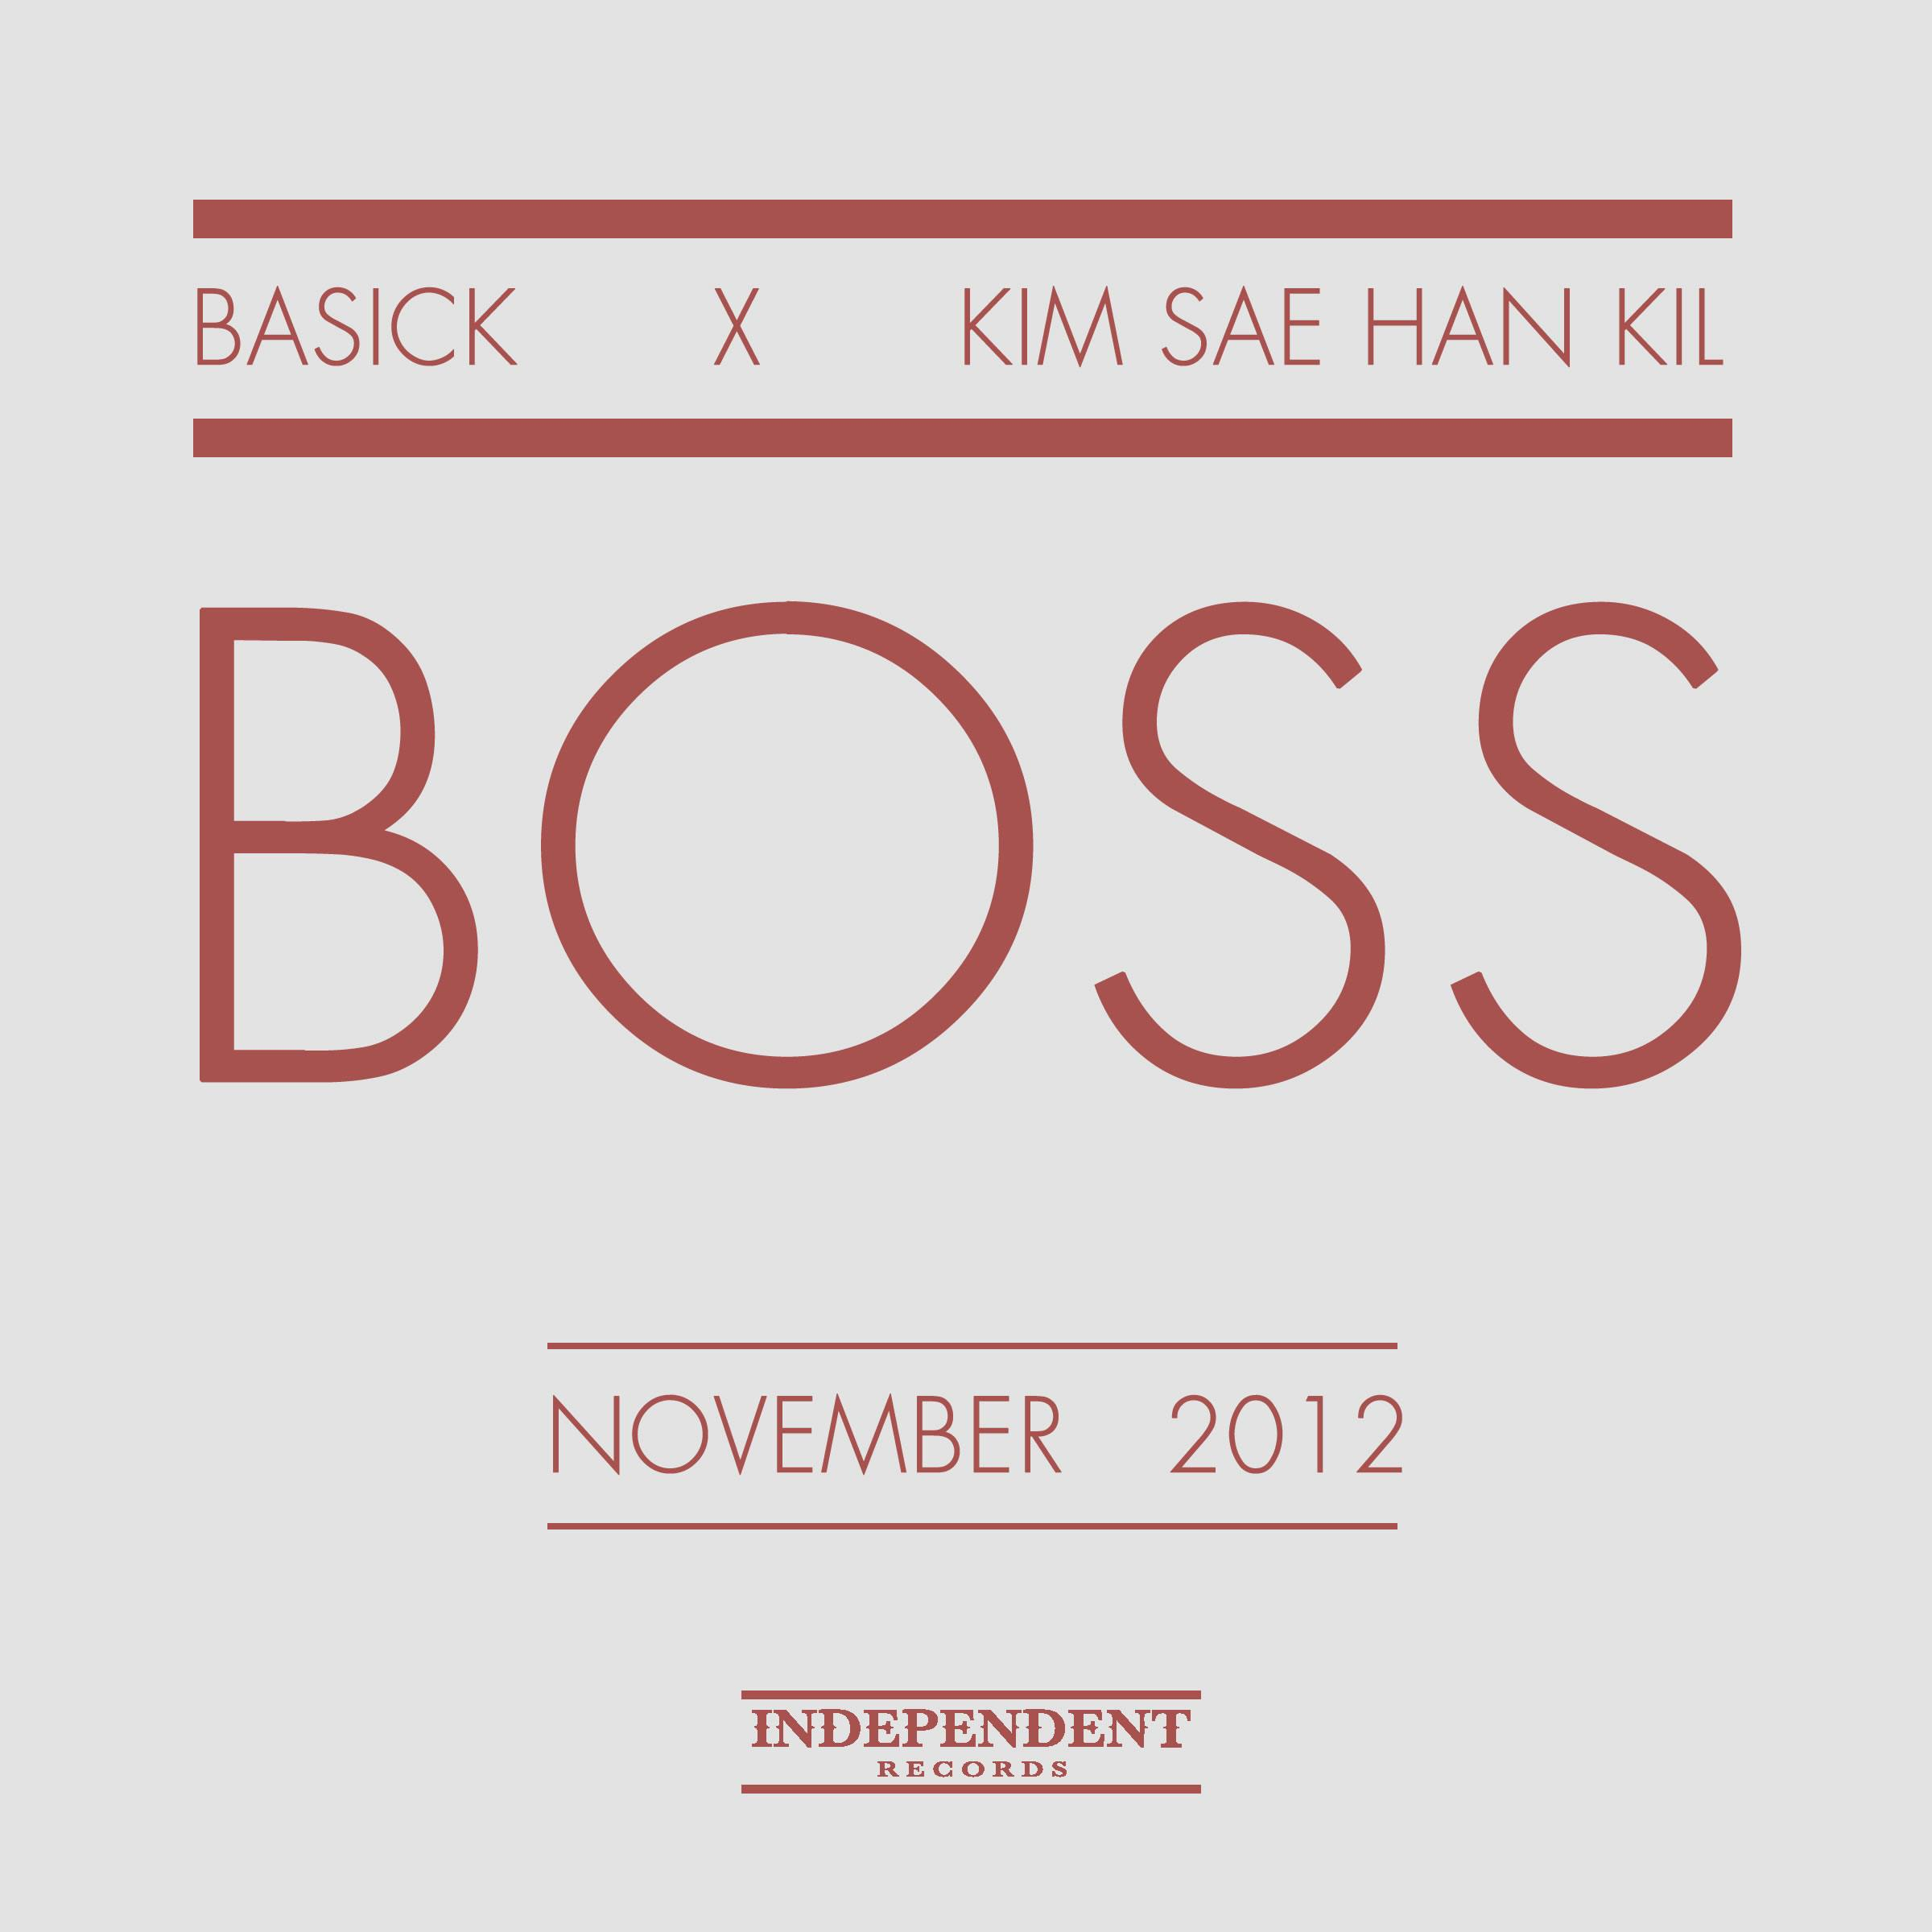 [Single] Basick - Boss